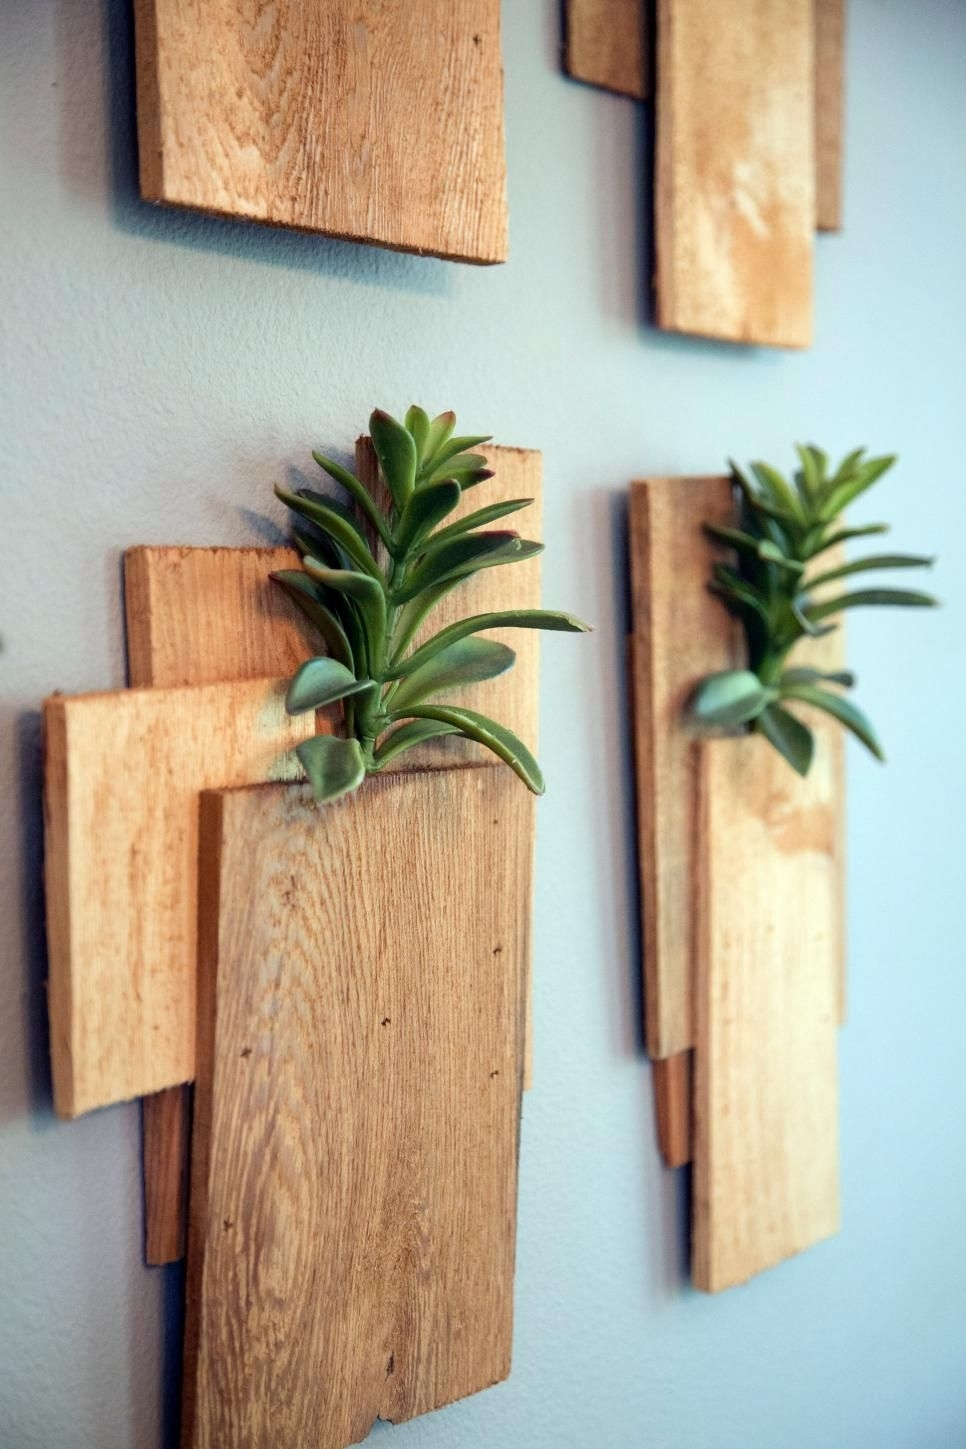 Wall Art Ideas From Chip And Joanna Gaines | Coastal Decorating with regard to Unique Wall Art (Image 15 of 20)